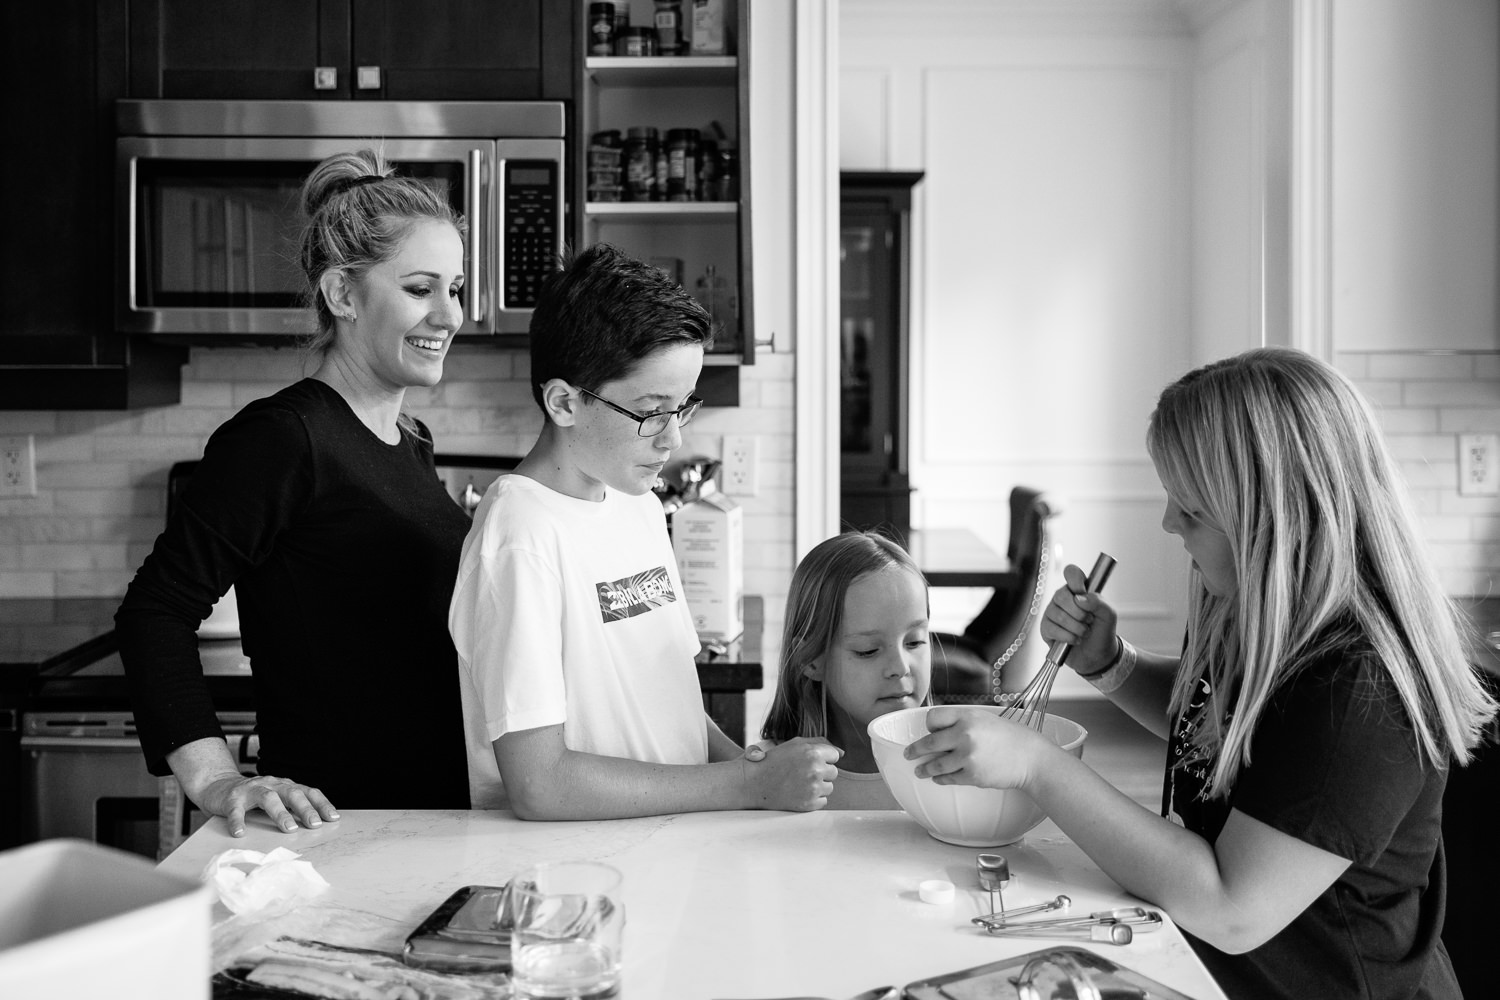 3 children standing at kitchen island mixing pancake batter for family brunch, 8 and 10 year old girls, mom standing behind 13 year old boy watching -Markham Lifestyle Photography